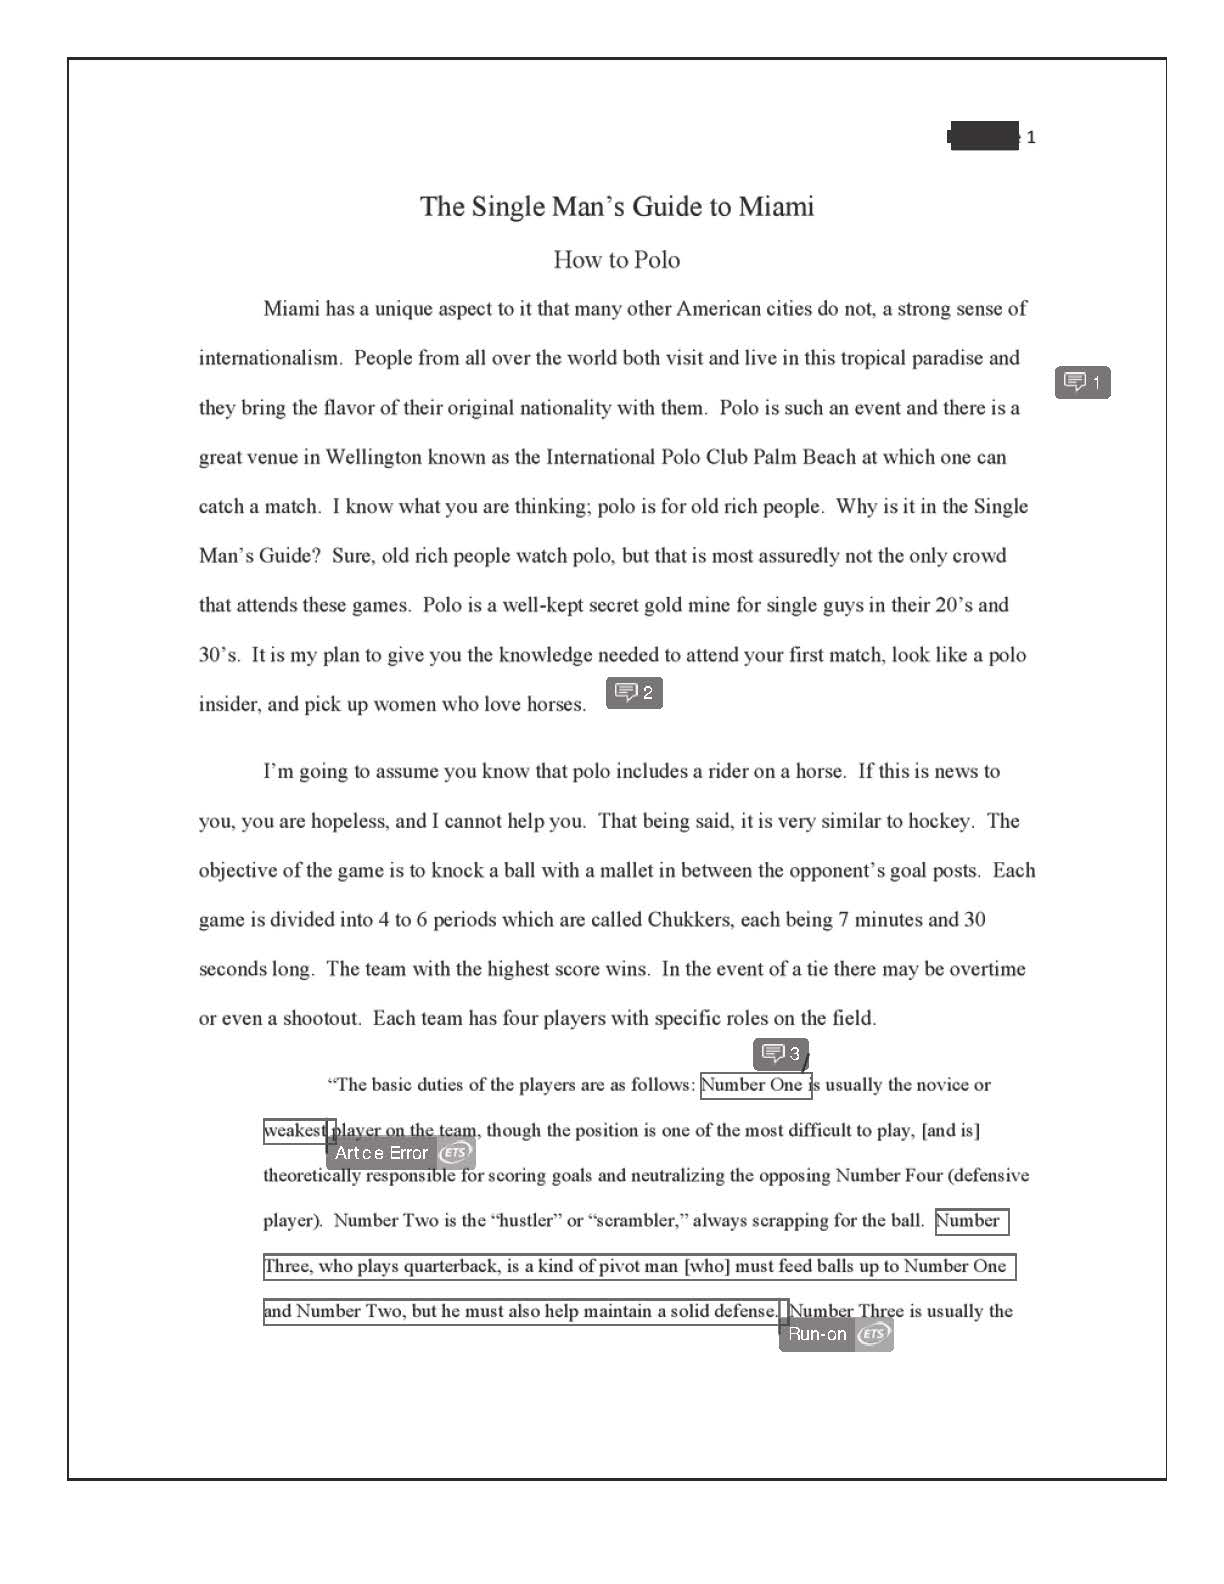 005 Informative Essay Topics Essays Sample Funny Argumentative For Middle School Final How To Polo Redacted P College Students Hilarious Good Remarkable 2018 Prompts High Prompt 4th Grade Full